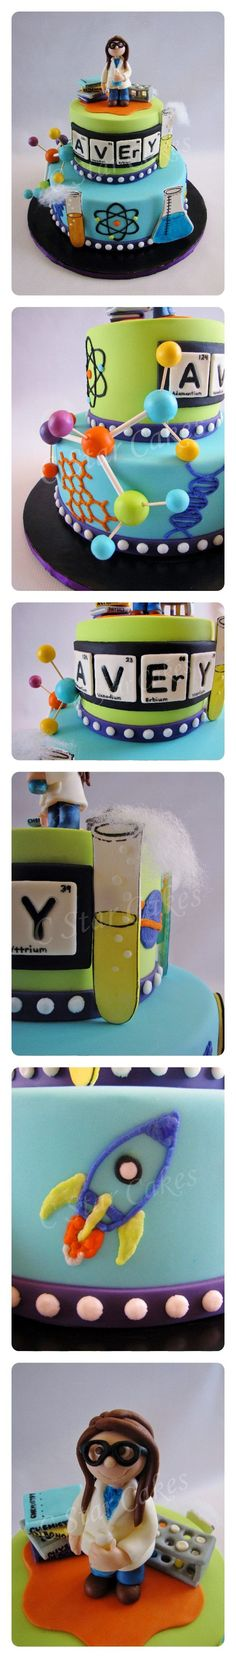 Avery's Science Themed cake by C Star Cakes #cstarcakes